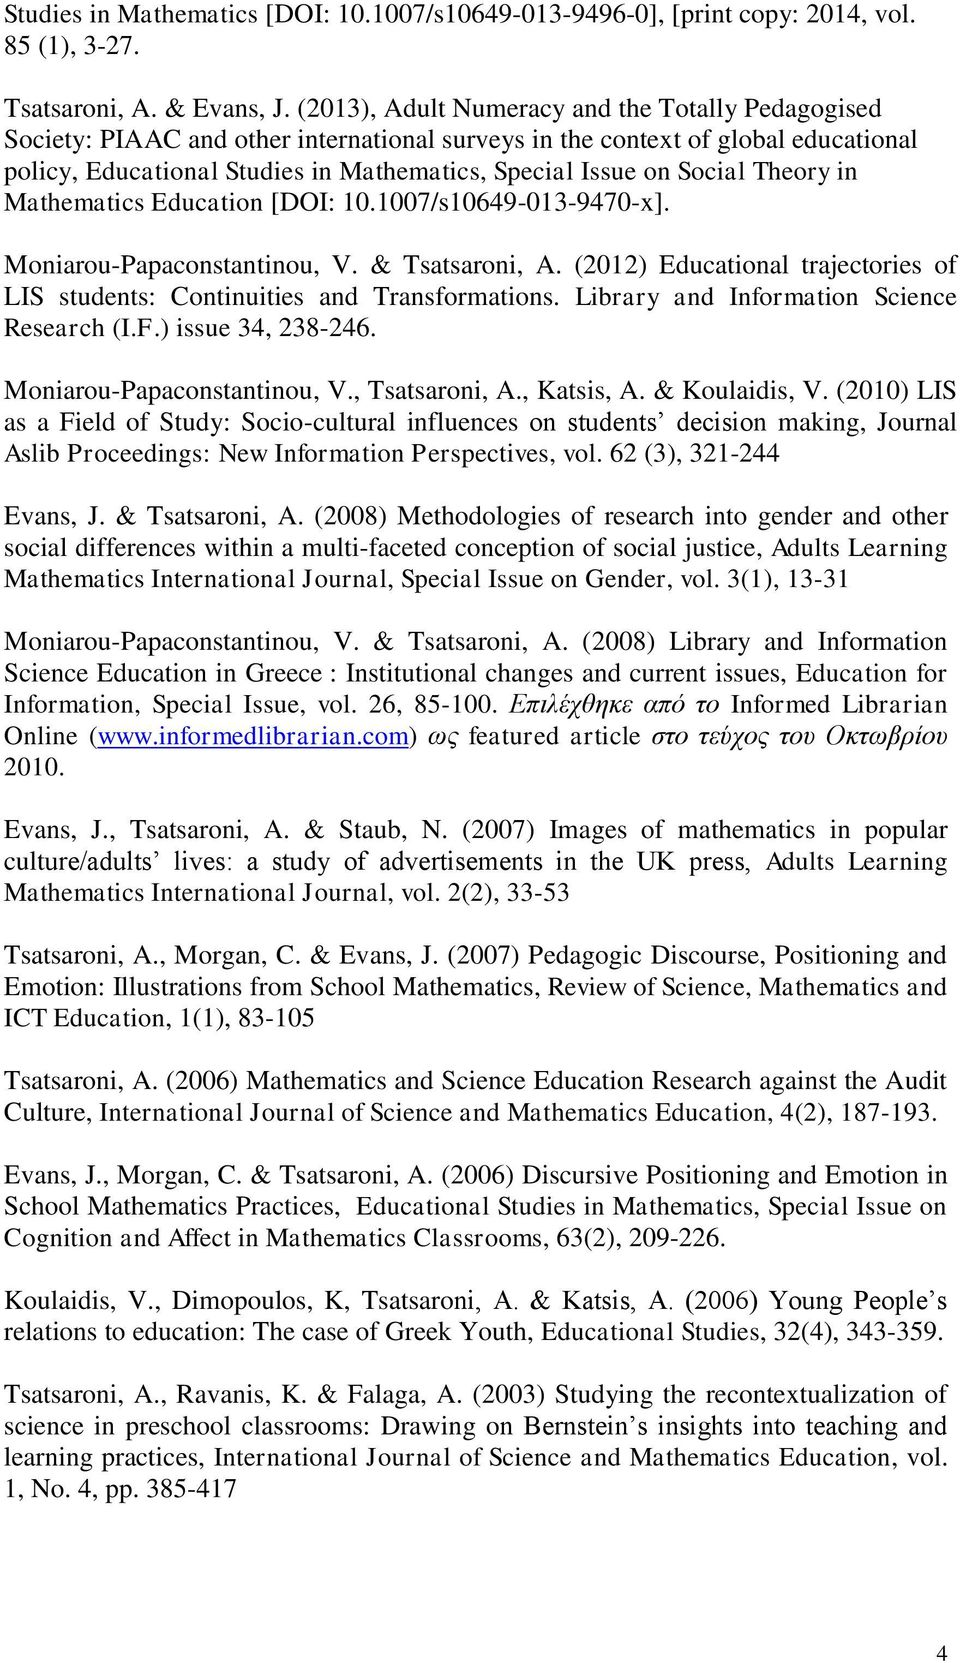 Social Theory in Mathematics Education [DOI: 10.1007/s10649-013-9470-x]. Moniarou-Papaconstantinou, V. & Tsatsaroni, A.